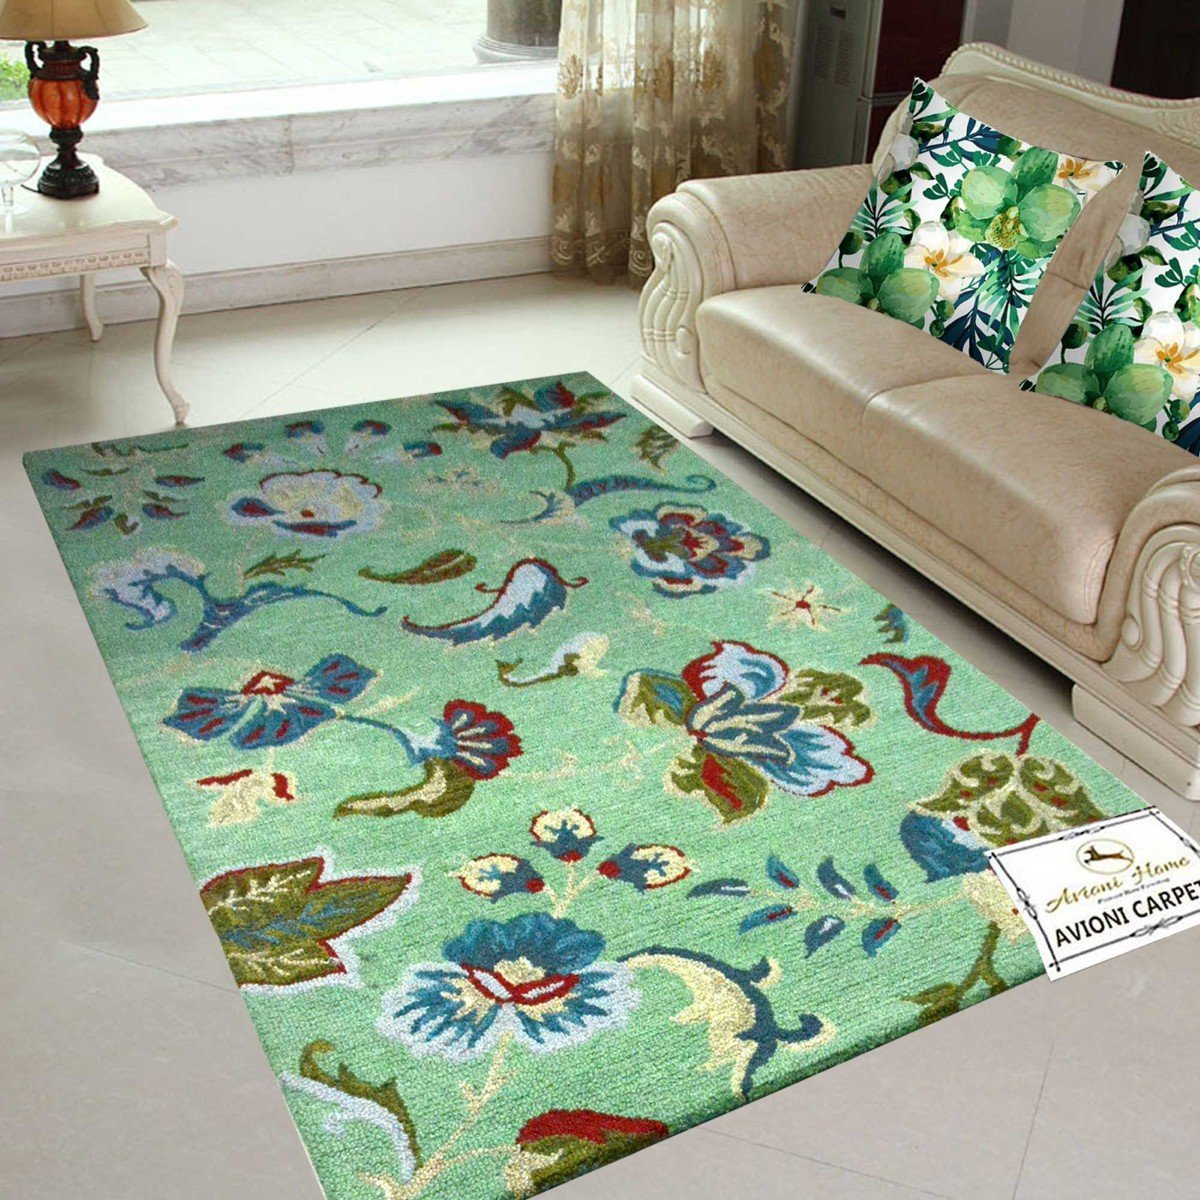 Floral Carpet | Loop Pile Design |  Avioni Carpets